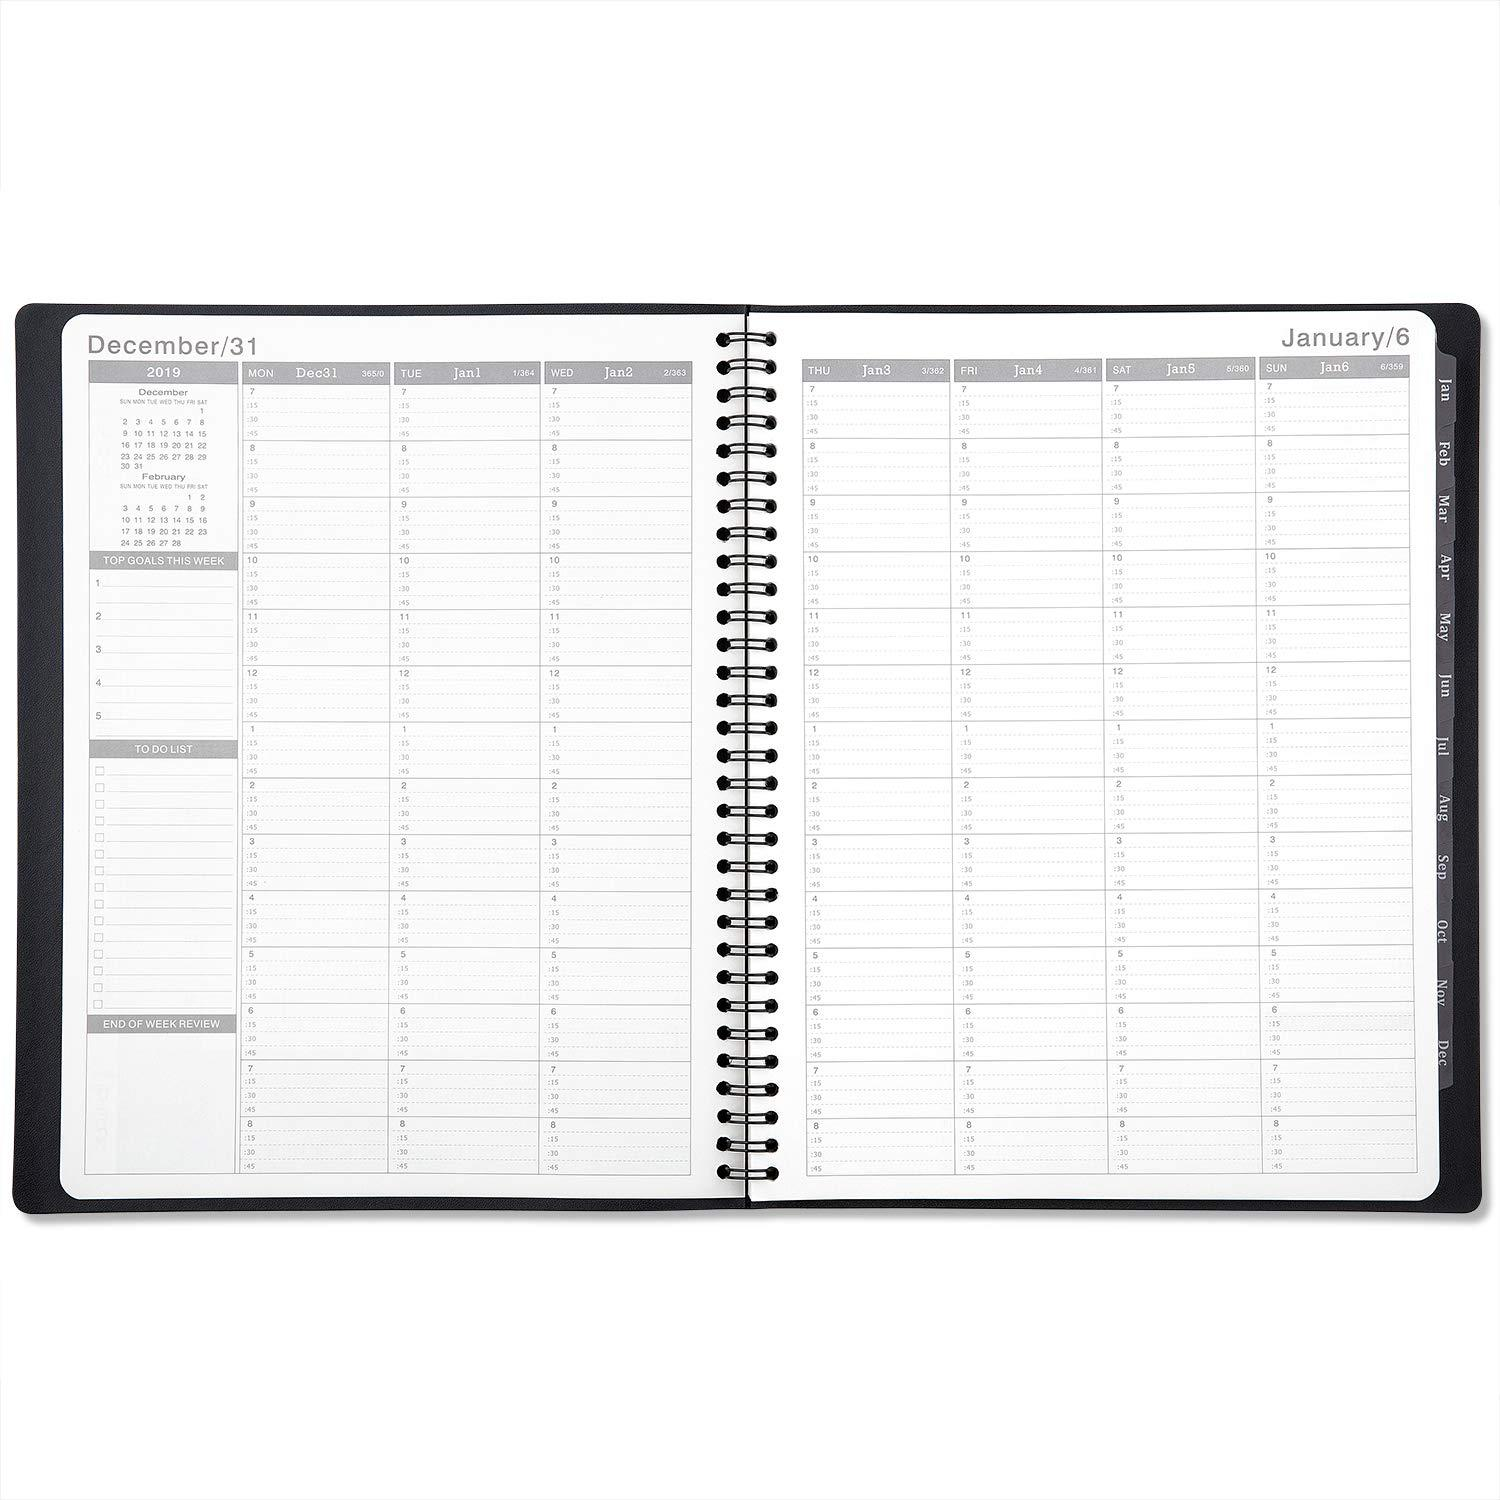 2019 weekly appointment book  planner